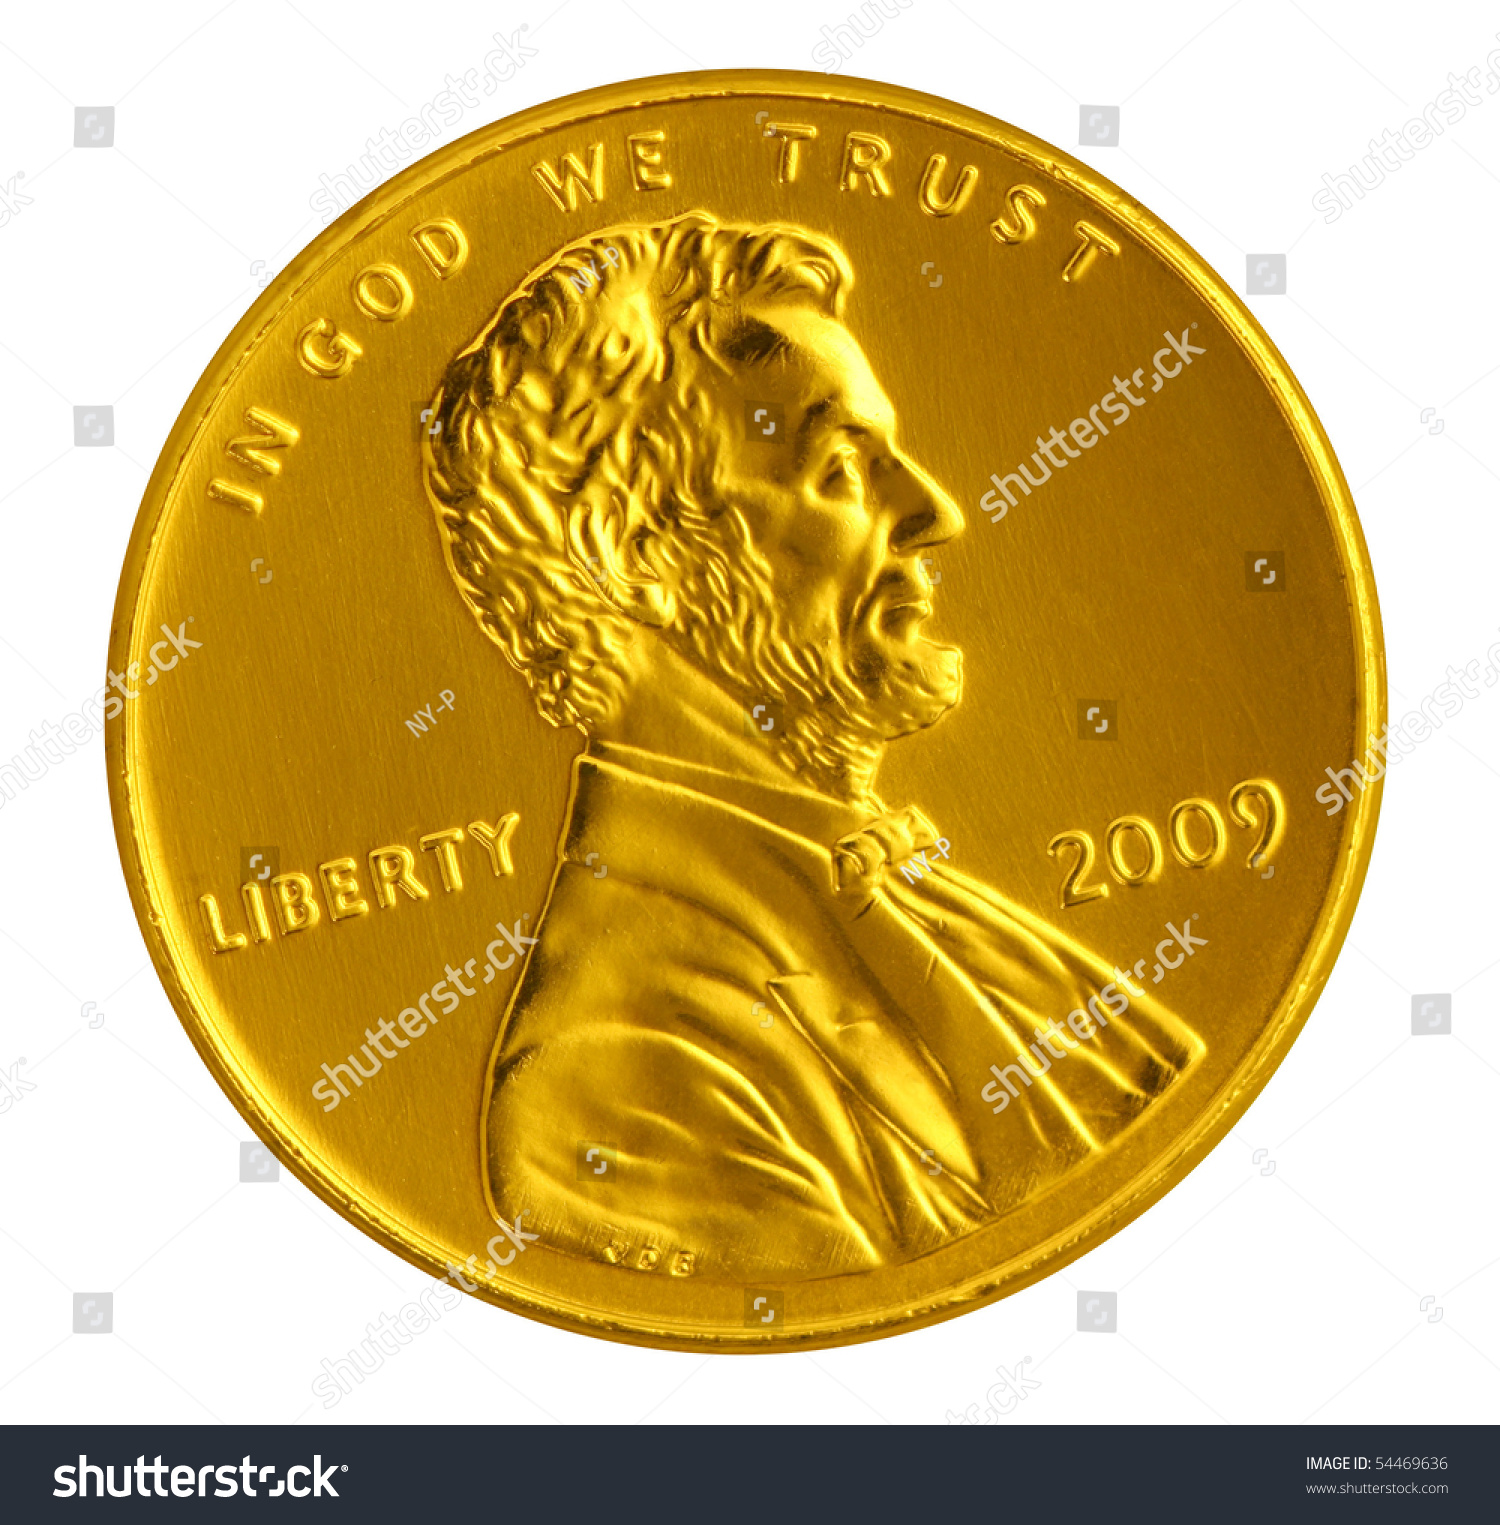 Gold penny stock photo image royalty free 54469636 shutterstock gold penny publicscrutiny Images